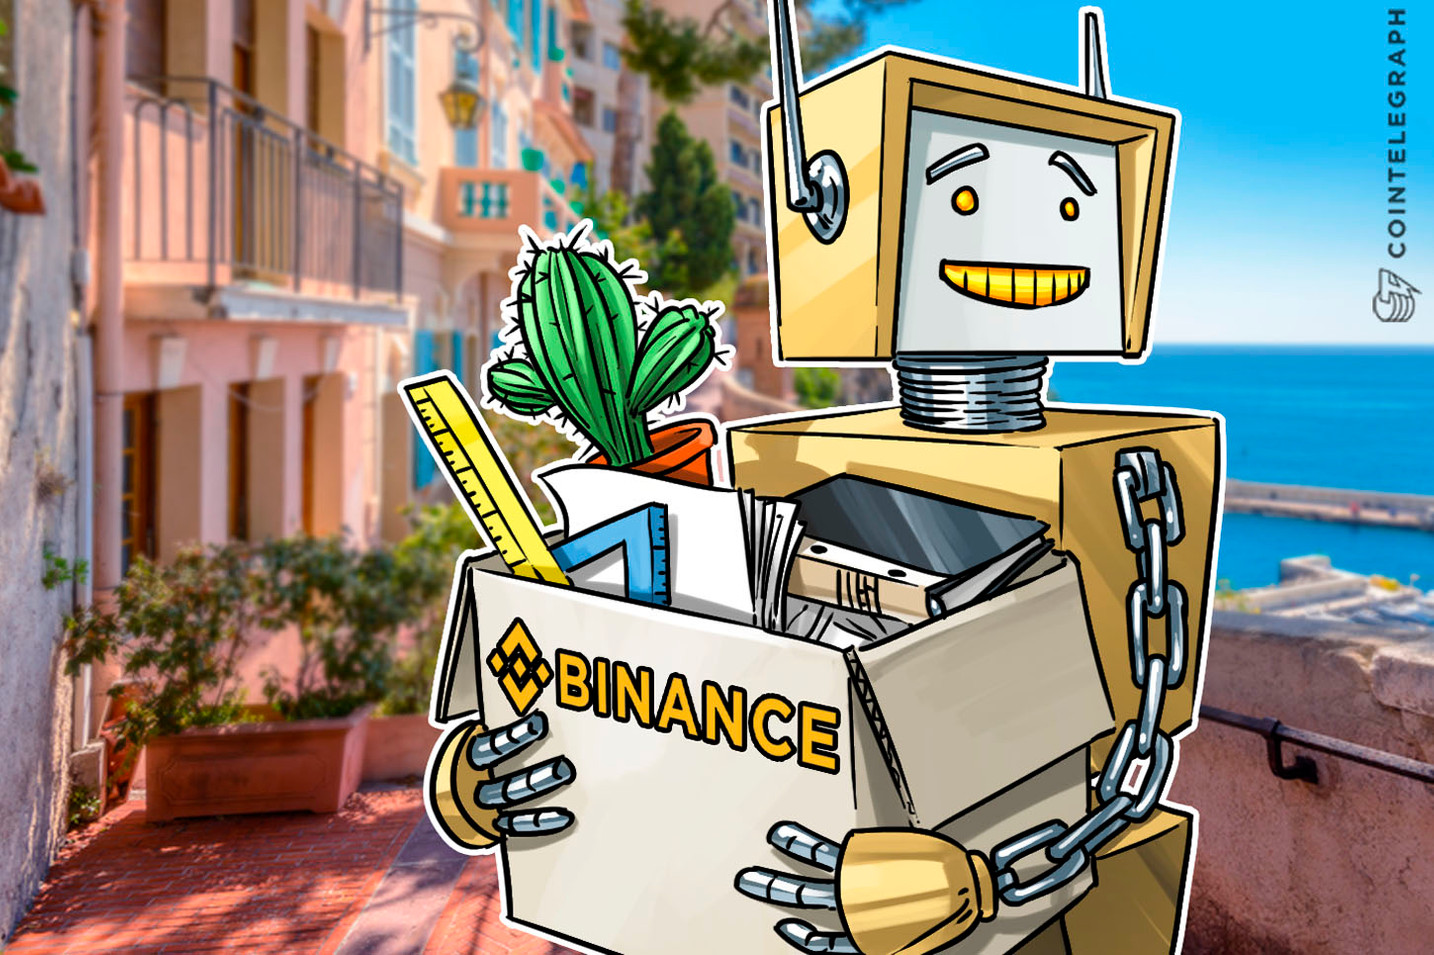 Major Crypto Exchange Binance To Open Office In Malta After Japanese Regulator Warning